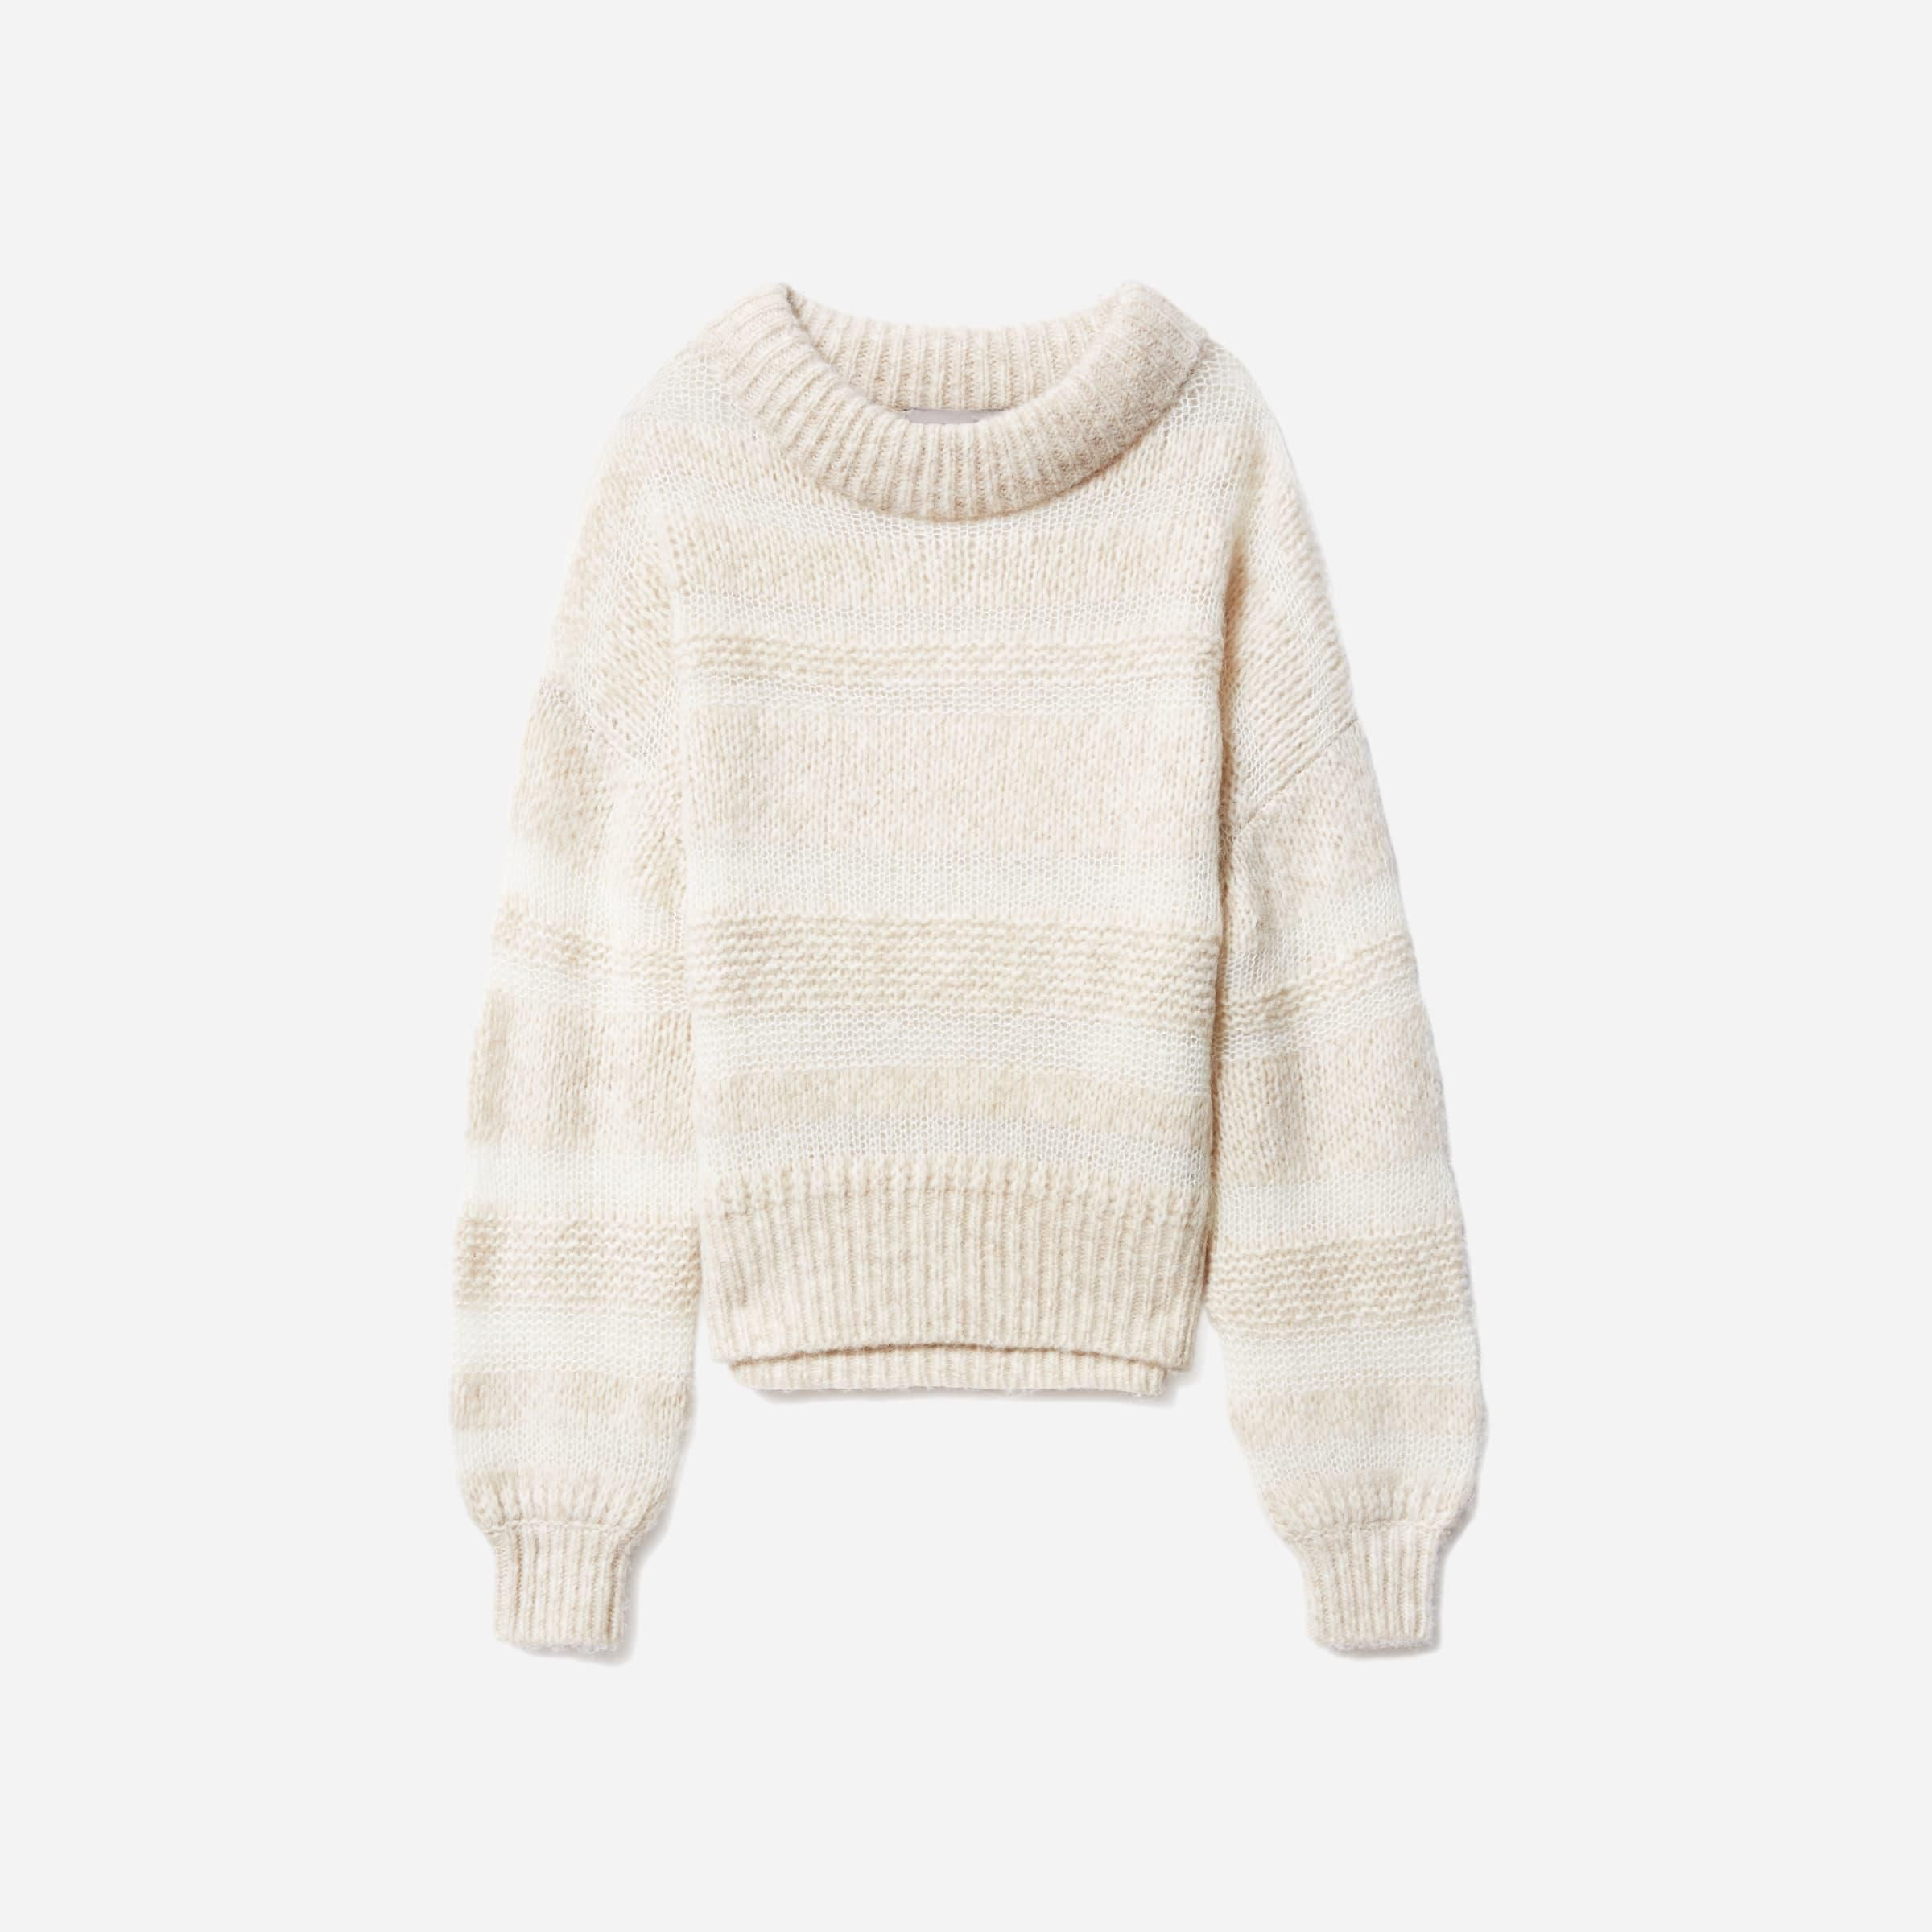 The Puff Sweater in Heathered Oat